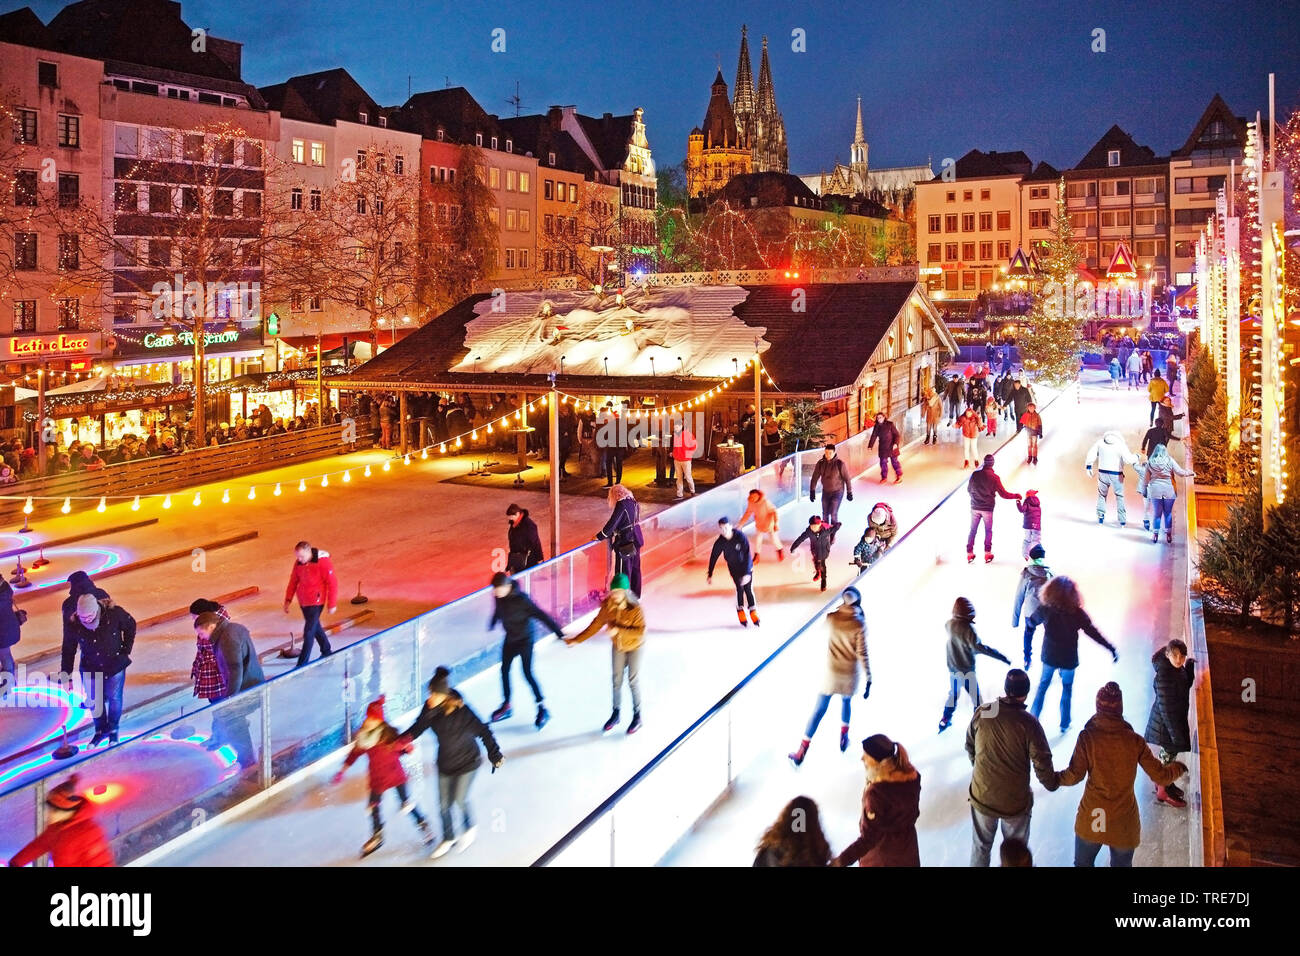 Menschen auf der illuminierten Eisbahn auf dem Heumarkt am Abend, Deutschland, Nordrhein-Westfalen, Koeln | ice skating on the Heumarkt in the evening - Stock Image